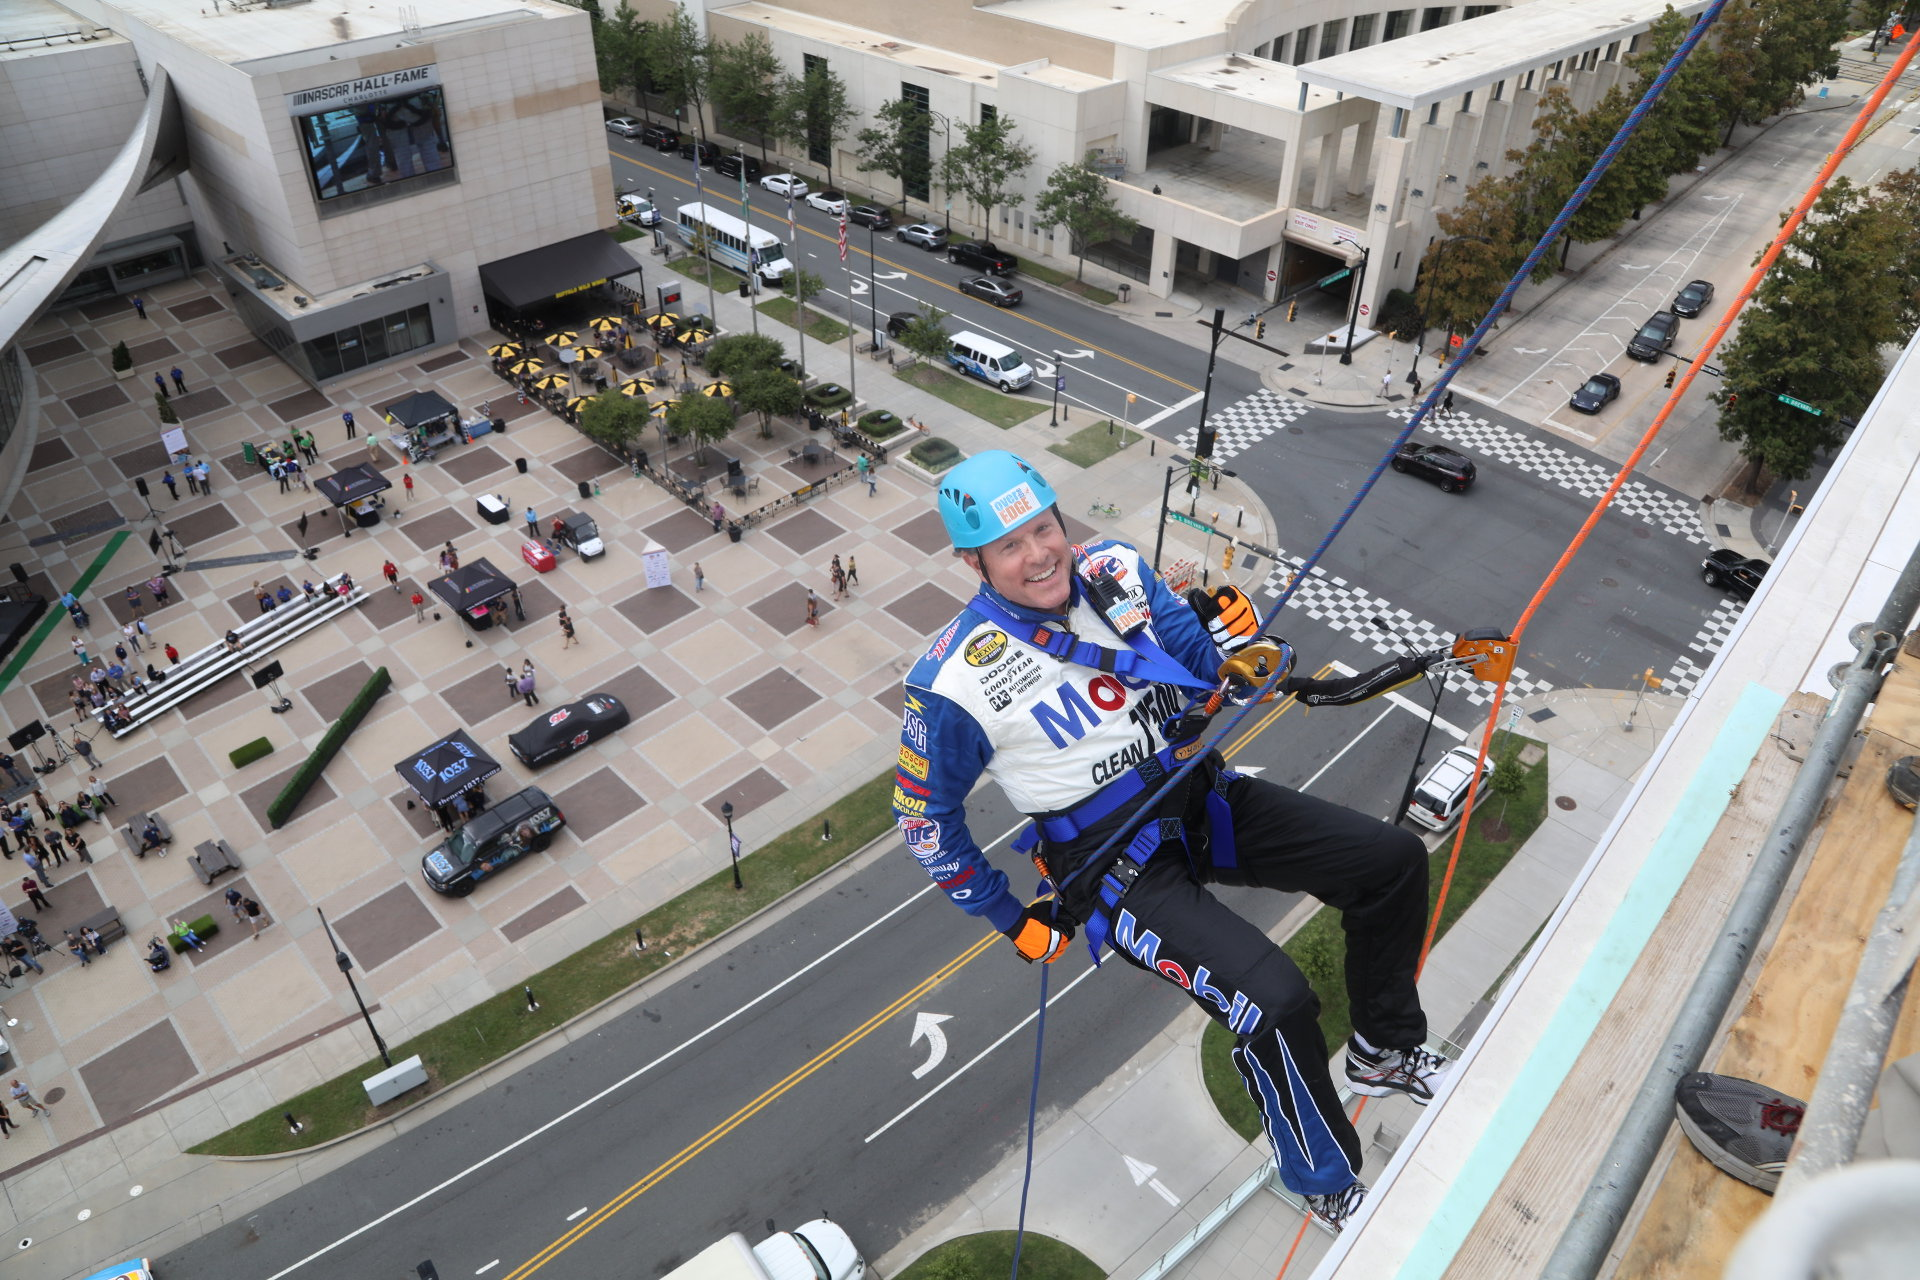 Go Over The Edge Charlotte!